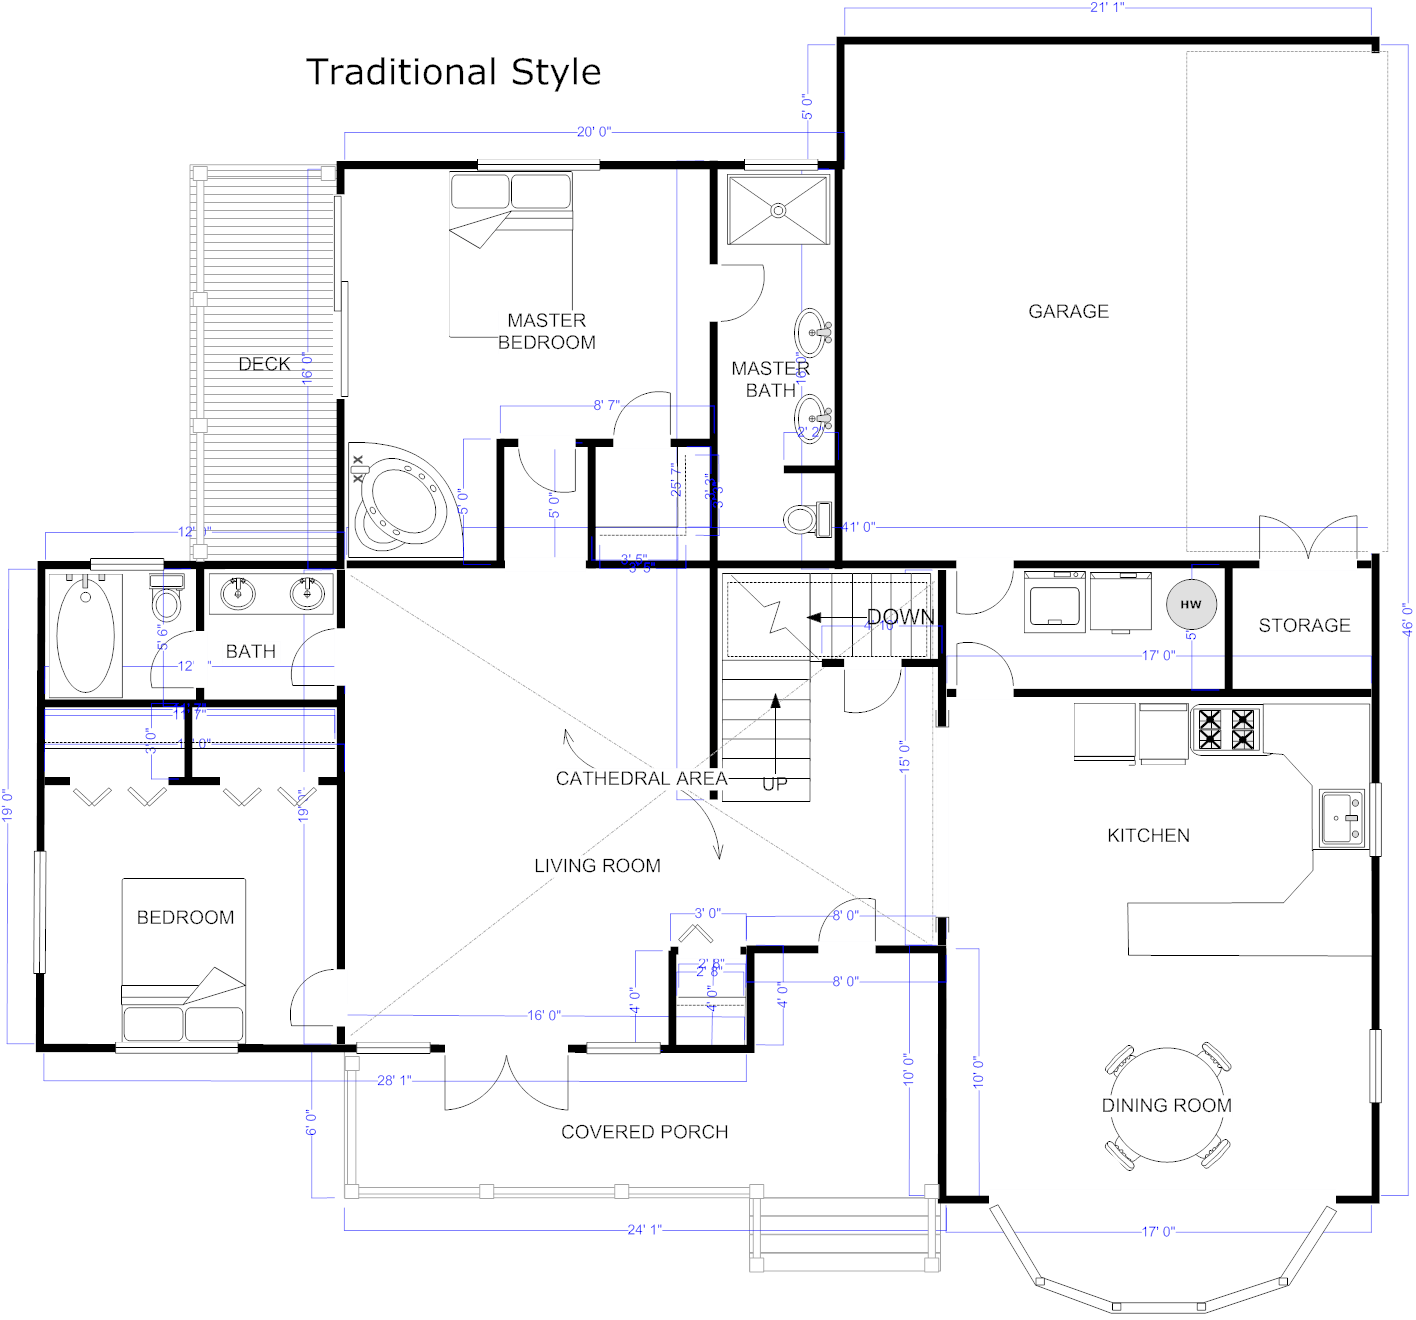 architecture software - Easy Home Design